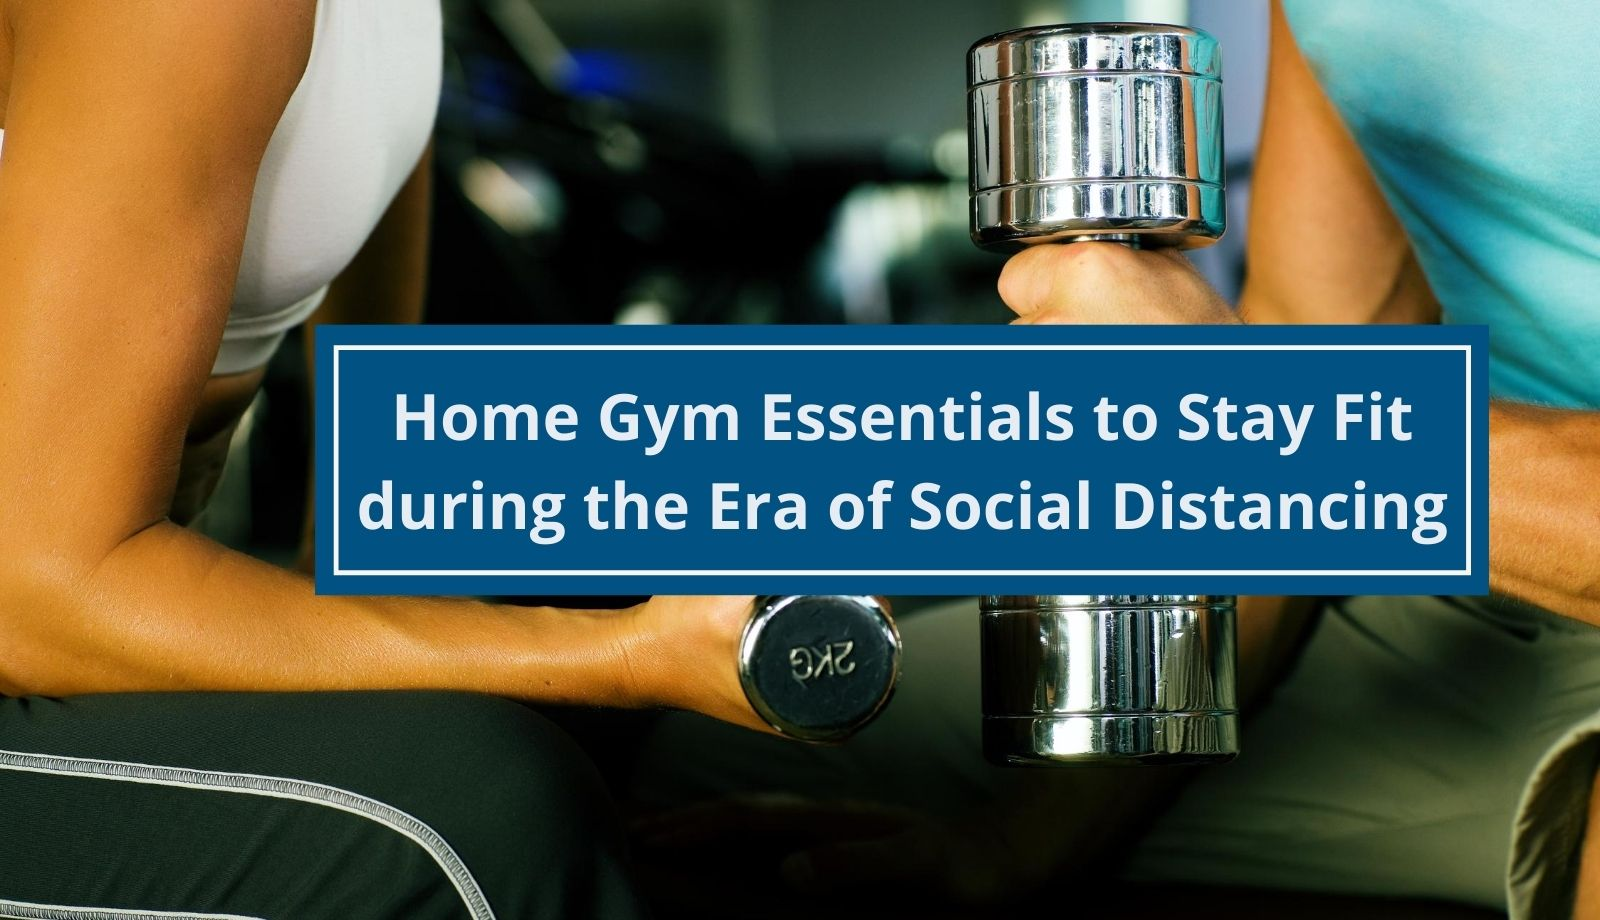 Home Gym Essentials to Stay Fit during the Era of Social Distancing [Infographic]